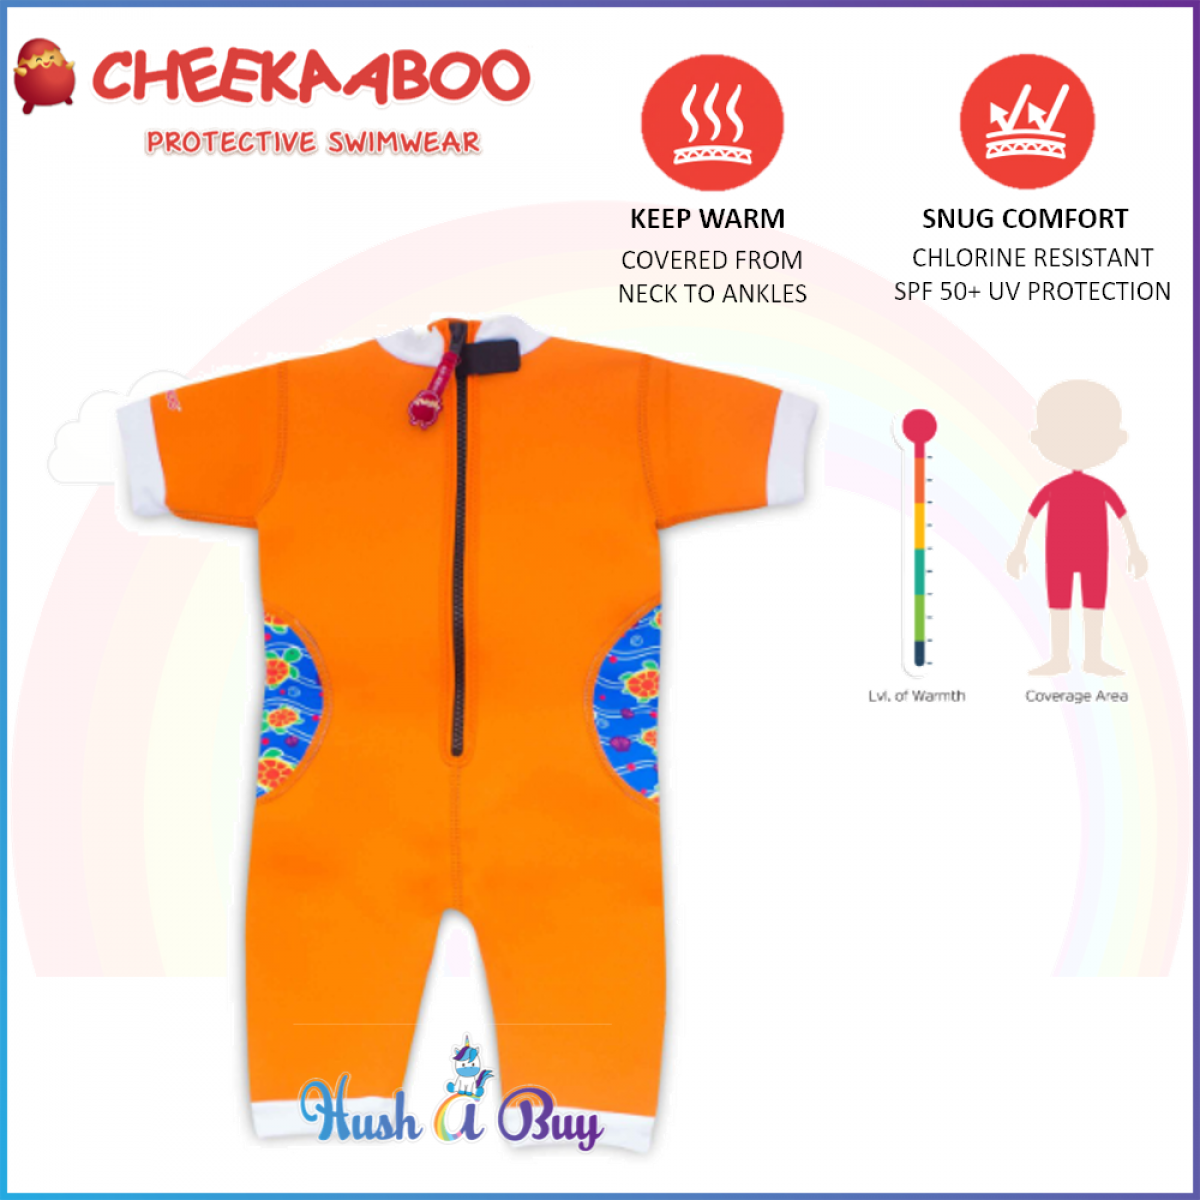 Cheekaaboo Warmiebabes Suit / Swimming Suit / Warmer / One Piece - Orange(Sea Turtle)